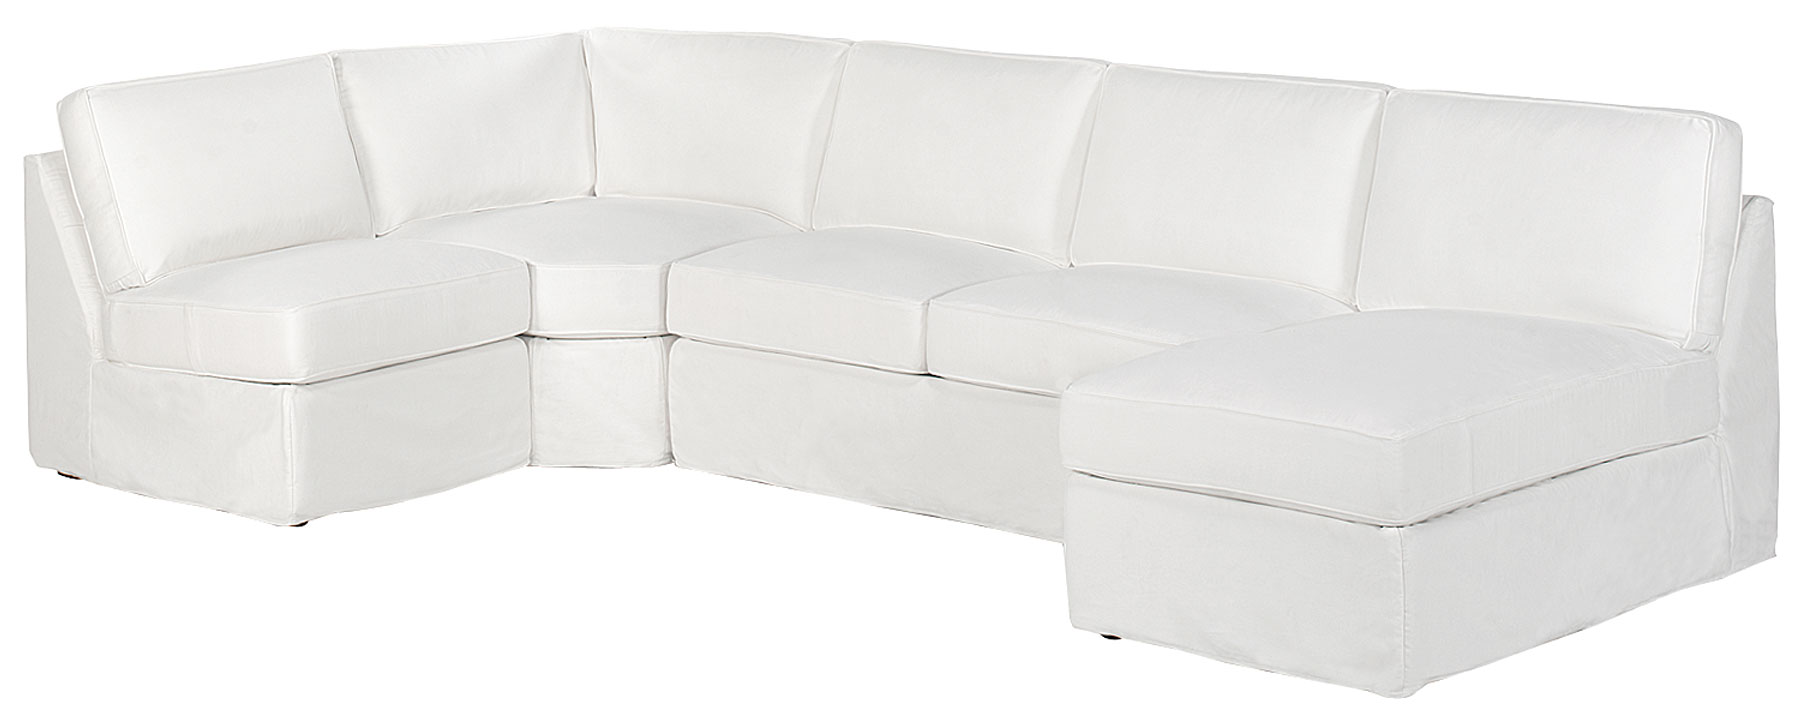 Ava Fabric Slipcovered Armless Contemporary Sectional Sofa. clubfurniture